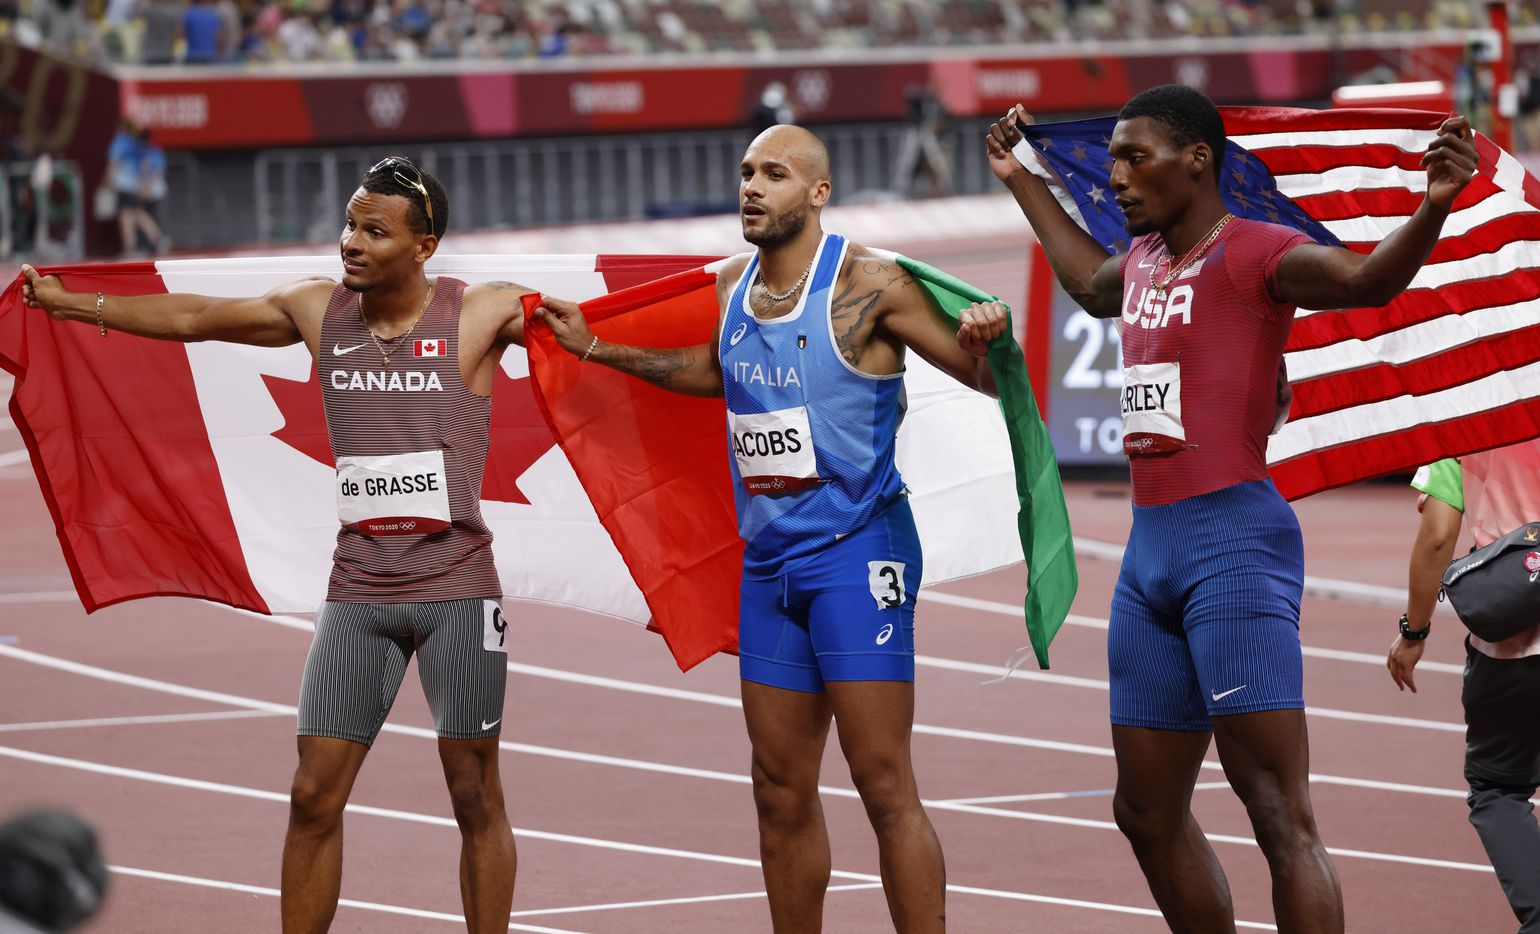 (From left to right) Canada's Andre de Grasse, Italy's Lamont Marcell Jacobs, and USA's Fred Kersey pose for photographers after competing in the men's 100 meter final   during the postponed 2020 Tokyo Olympics at Olympic Stadium, on Sunday, August 1, 2021, in Tokyo, Japan. Jacobs took first for gold, Kerly second for silver and de Grasse took third for bronze.